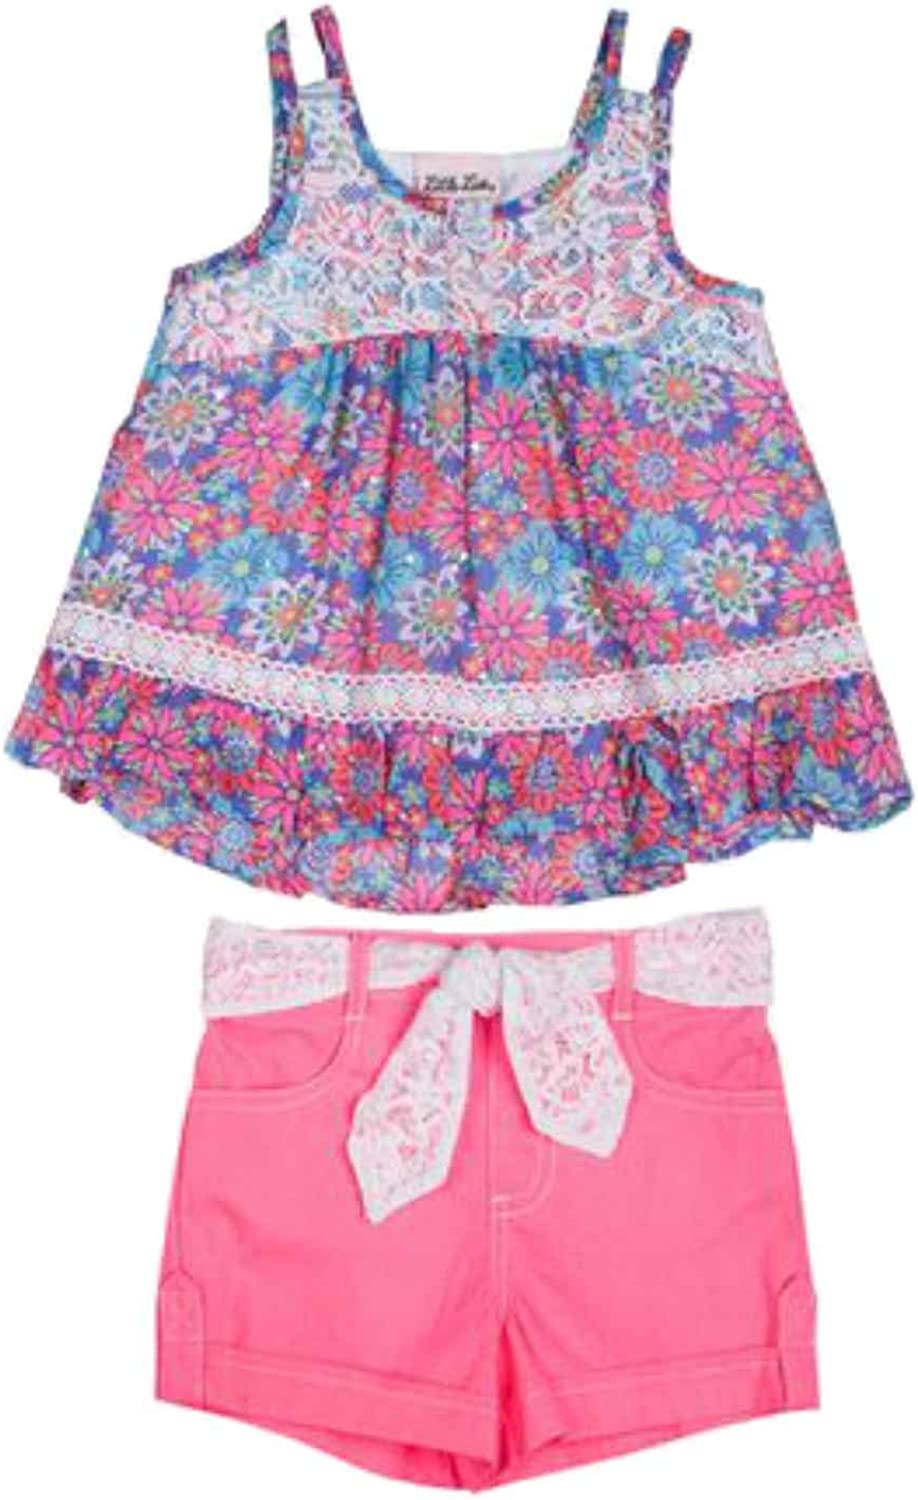 Infant Girls Purple Sparkle Floral Chiffon Top /& Hot Pink Shorts Outfit